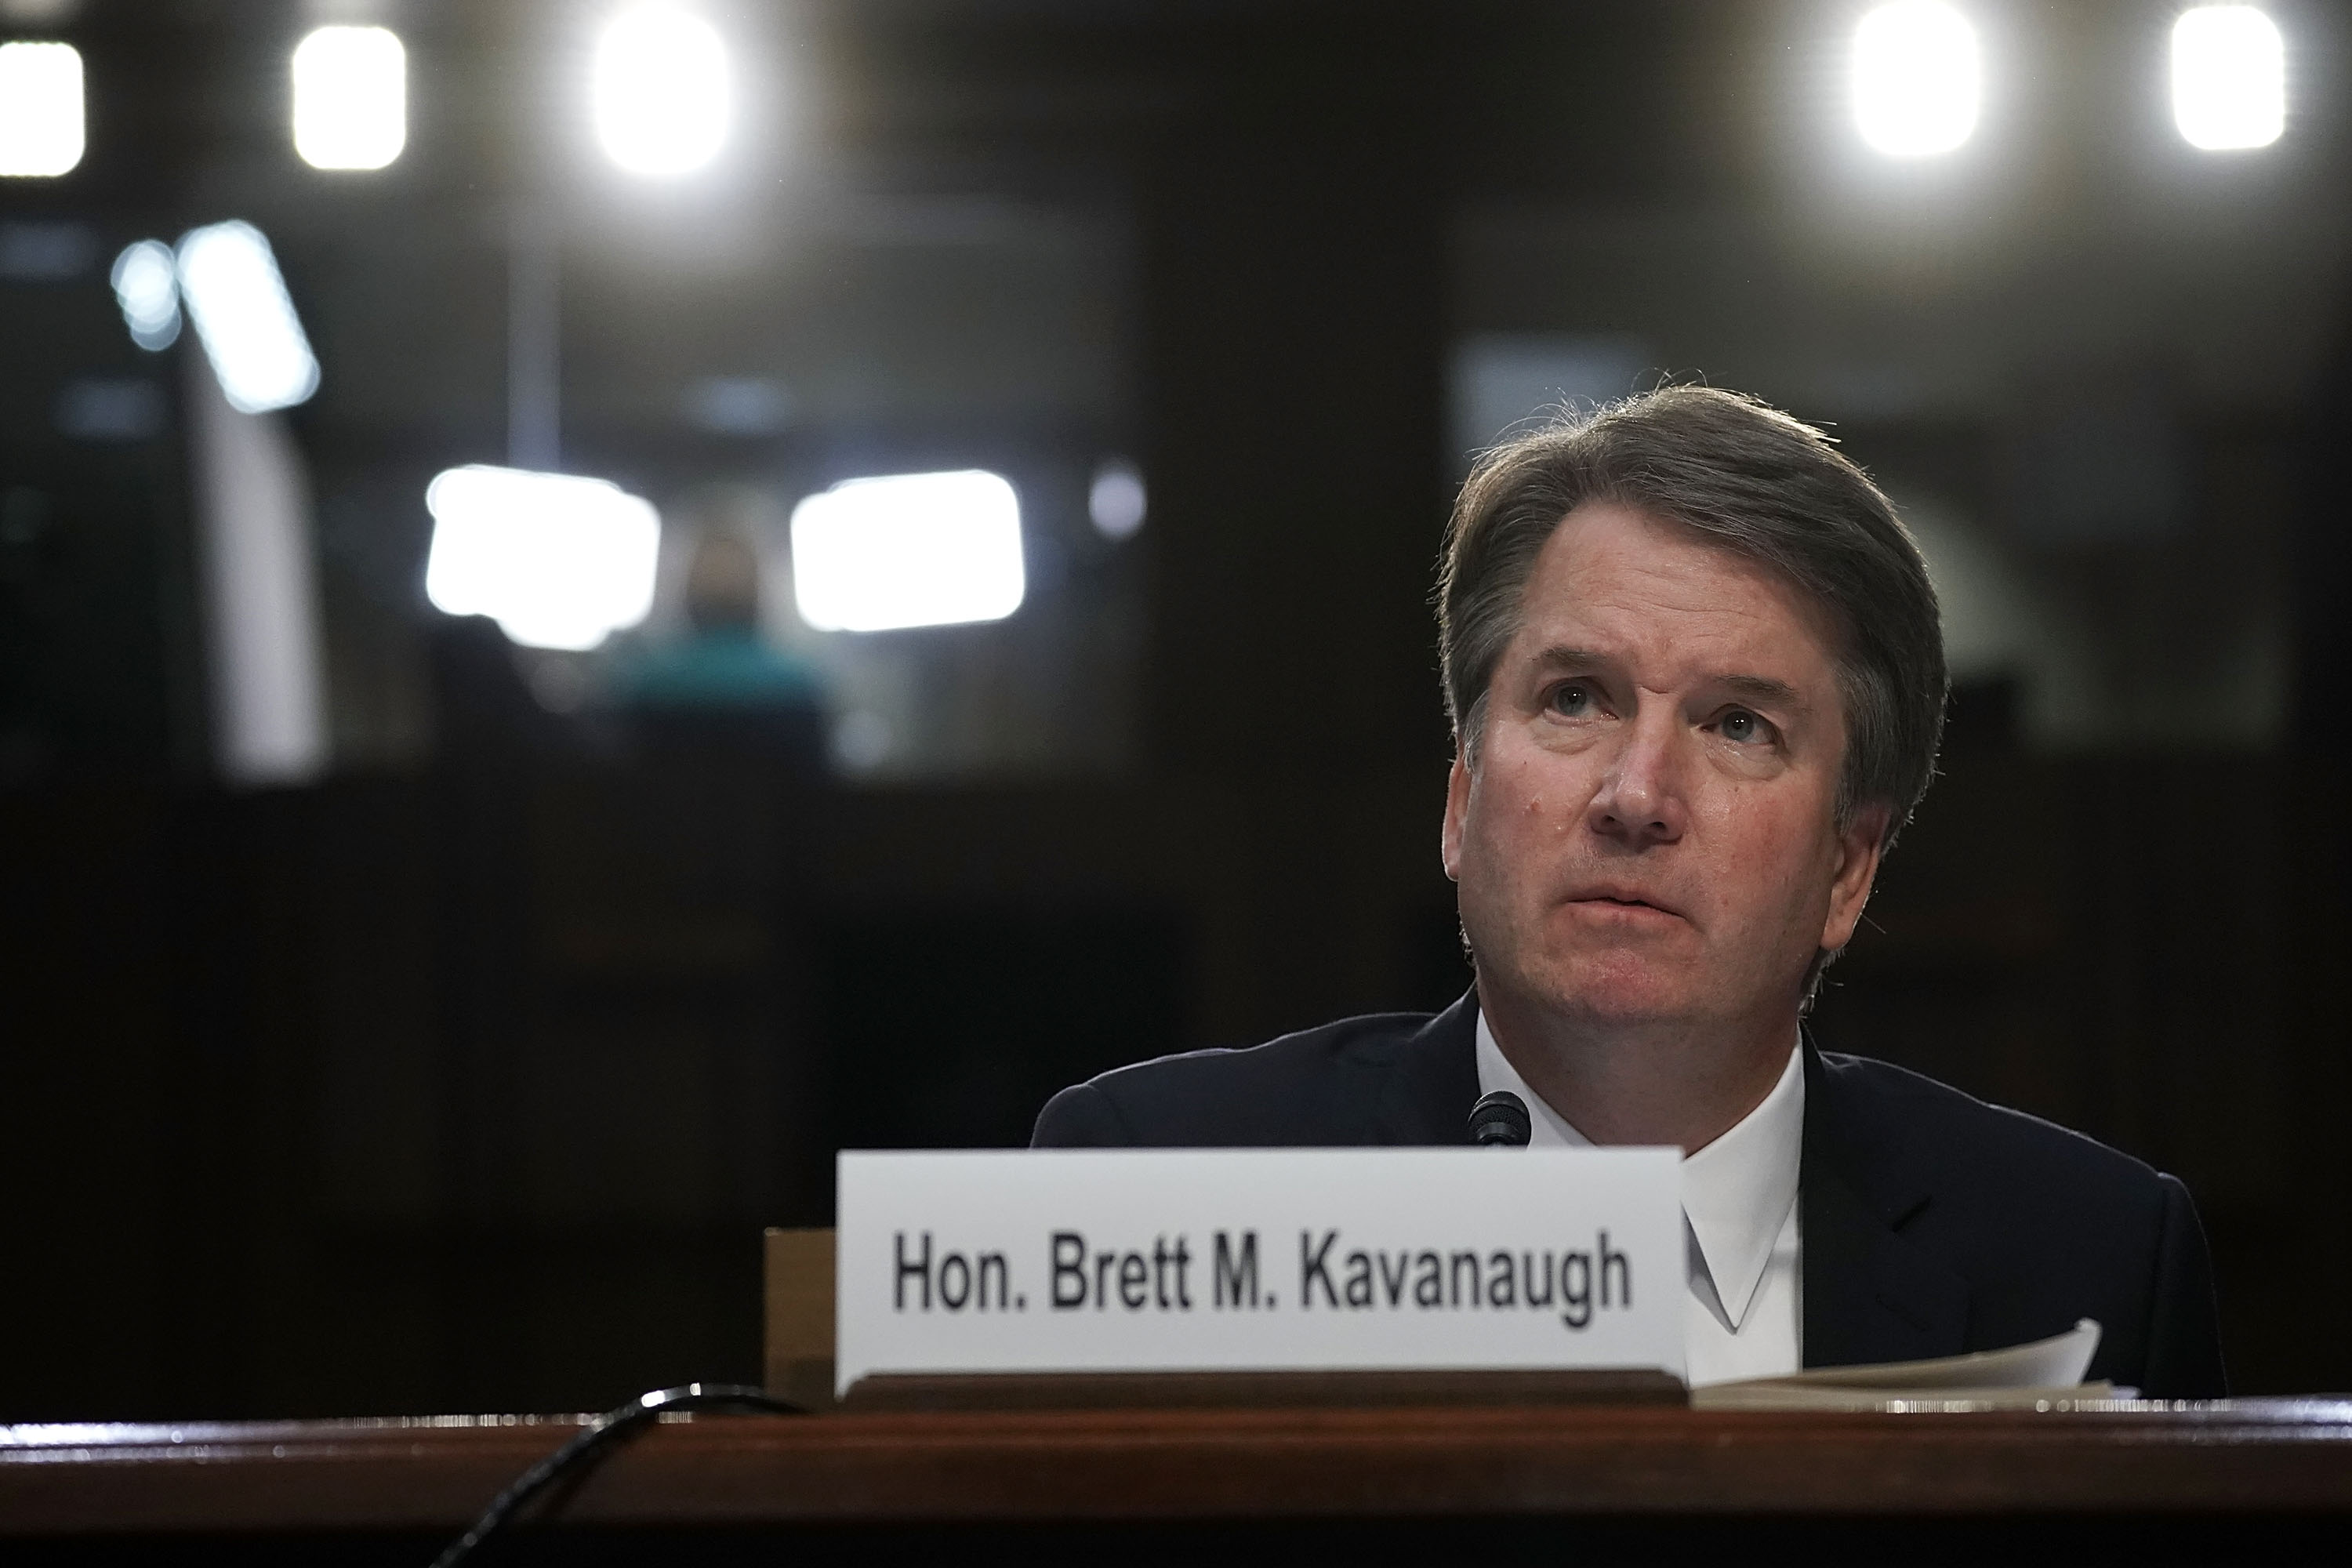 Sexual misconduct allegations have surfaced against Brett Kavanaugh